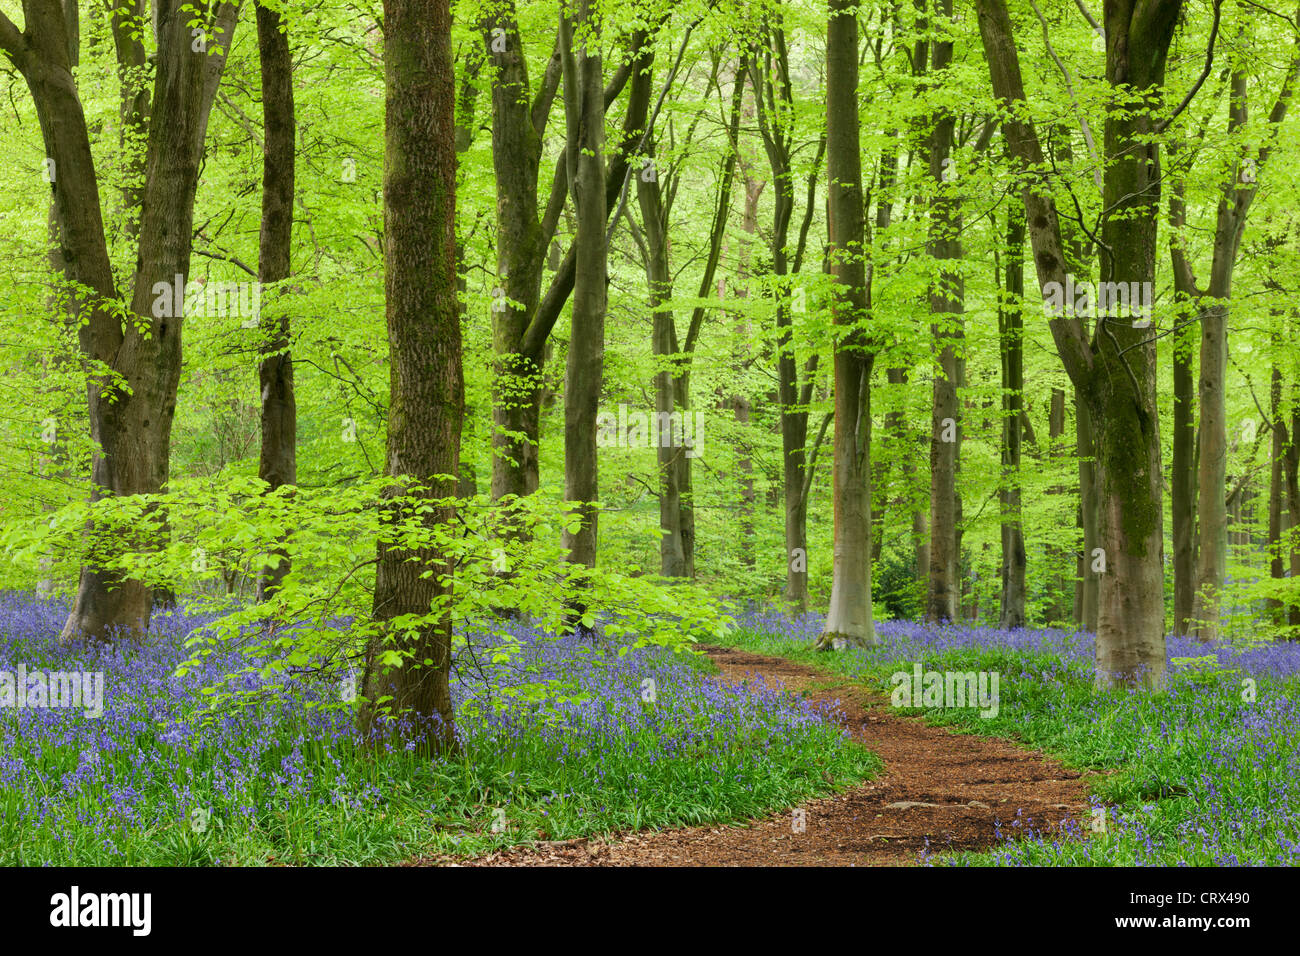 Bluebell carpet in a beech woodland, West Woods, Wiltshire, England. Spring (May) 2012. - Stock Image